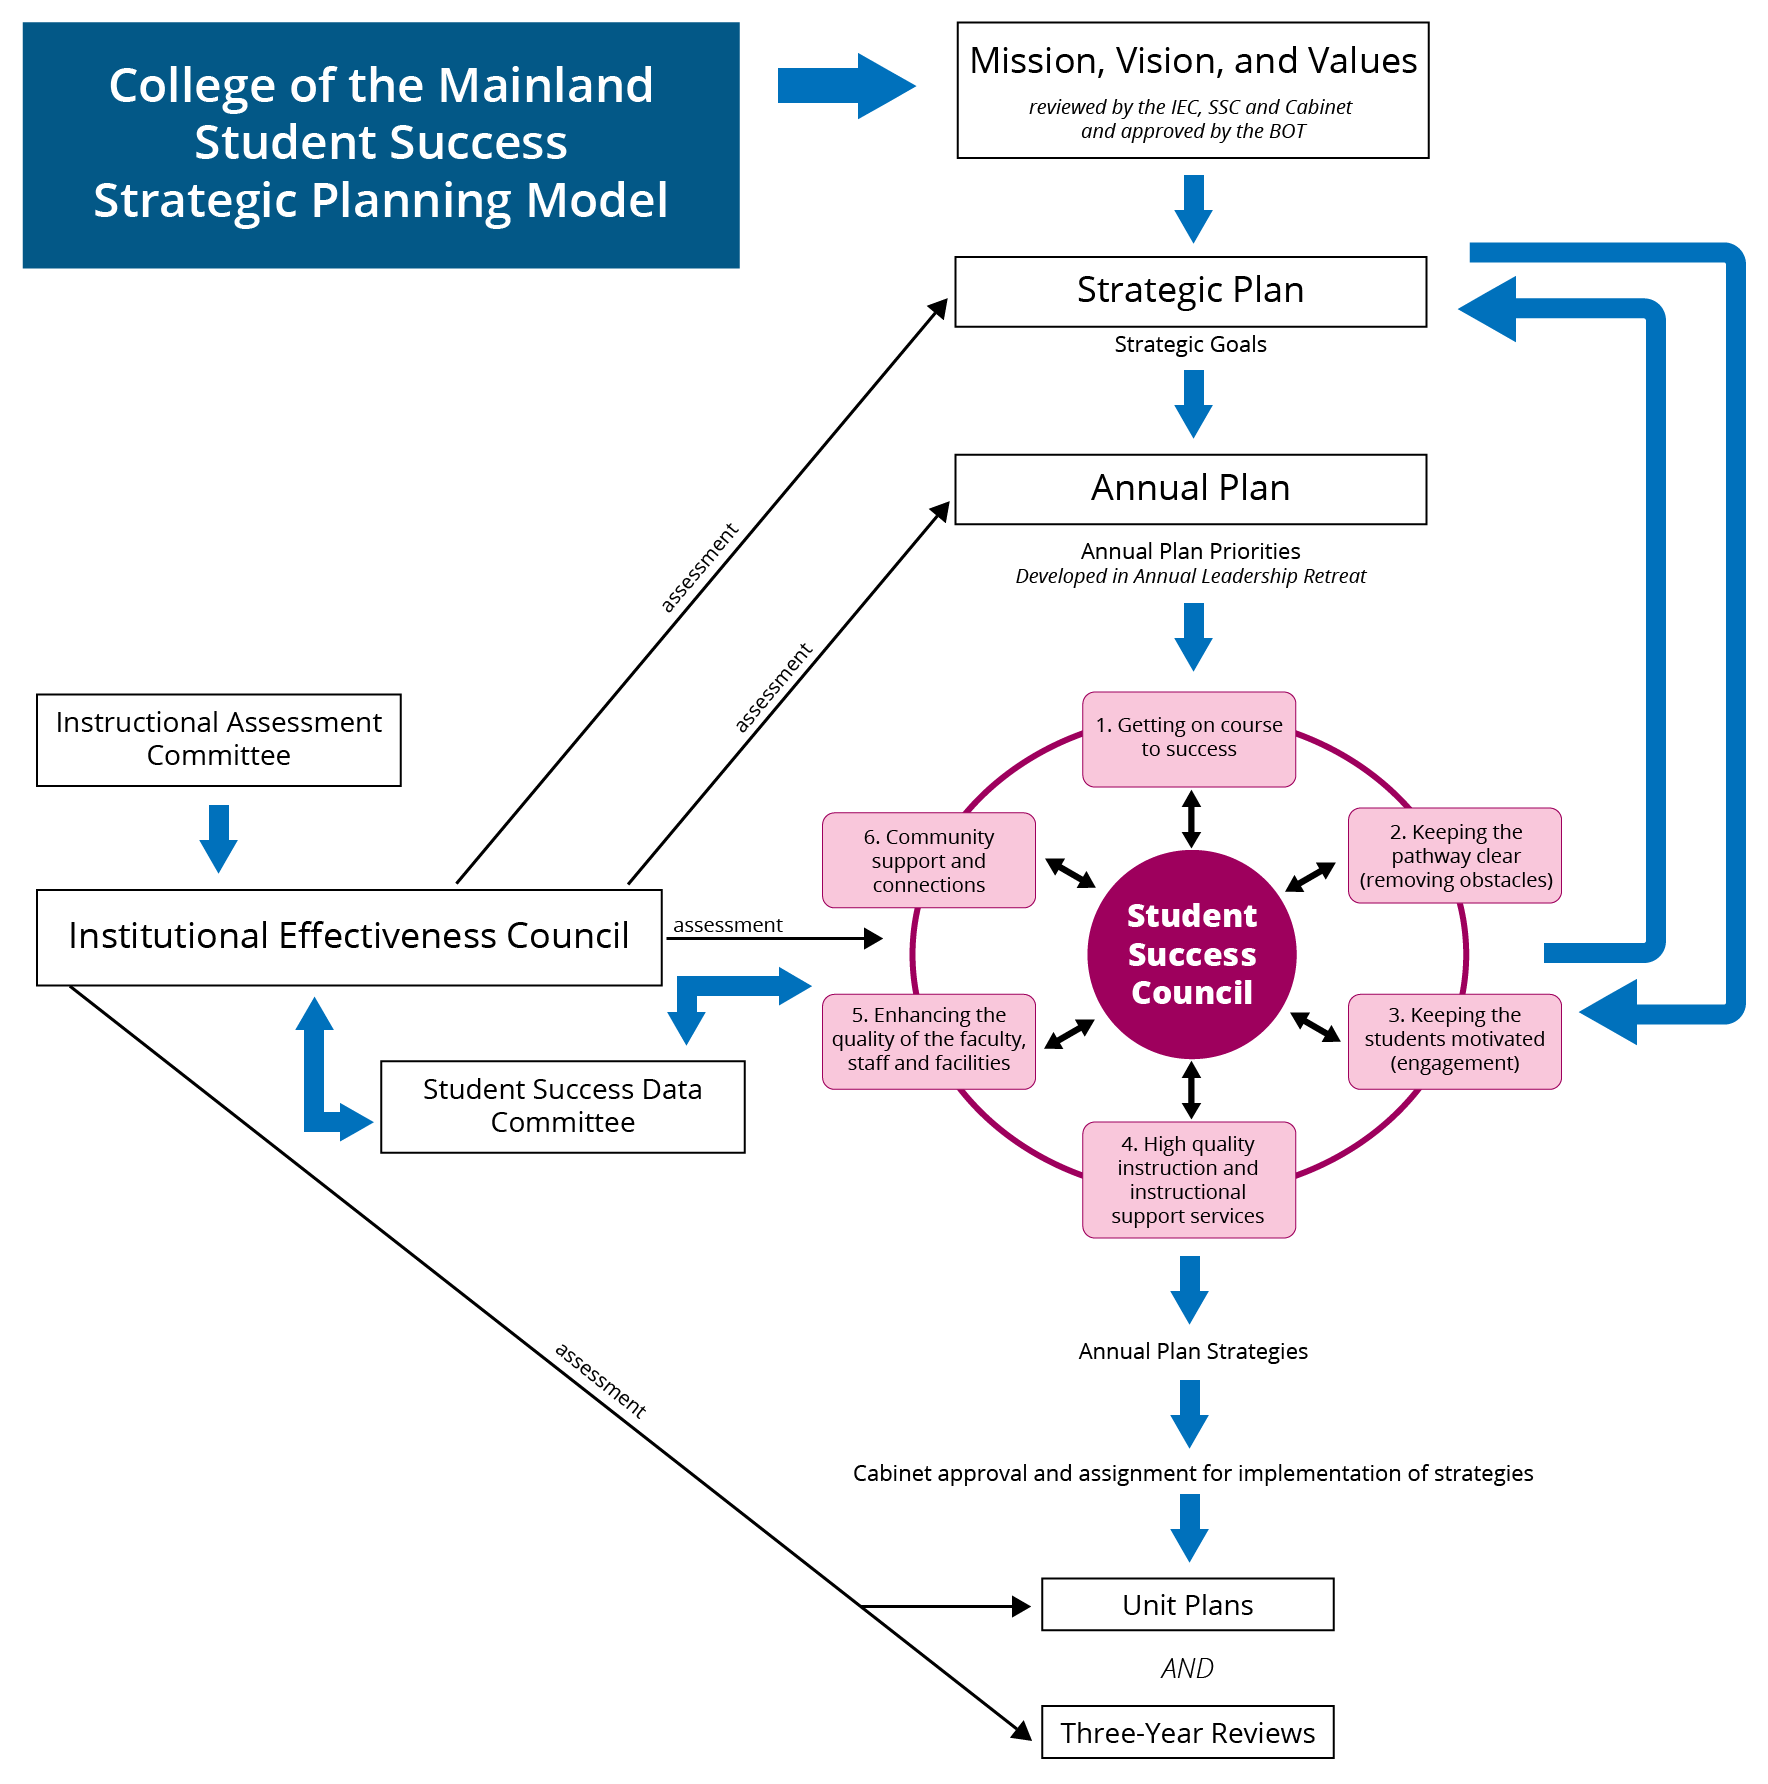 College of the Mainland Student Success Strategic Planning Model diagram